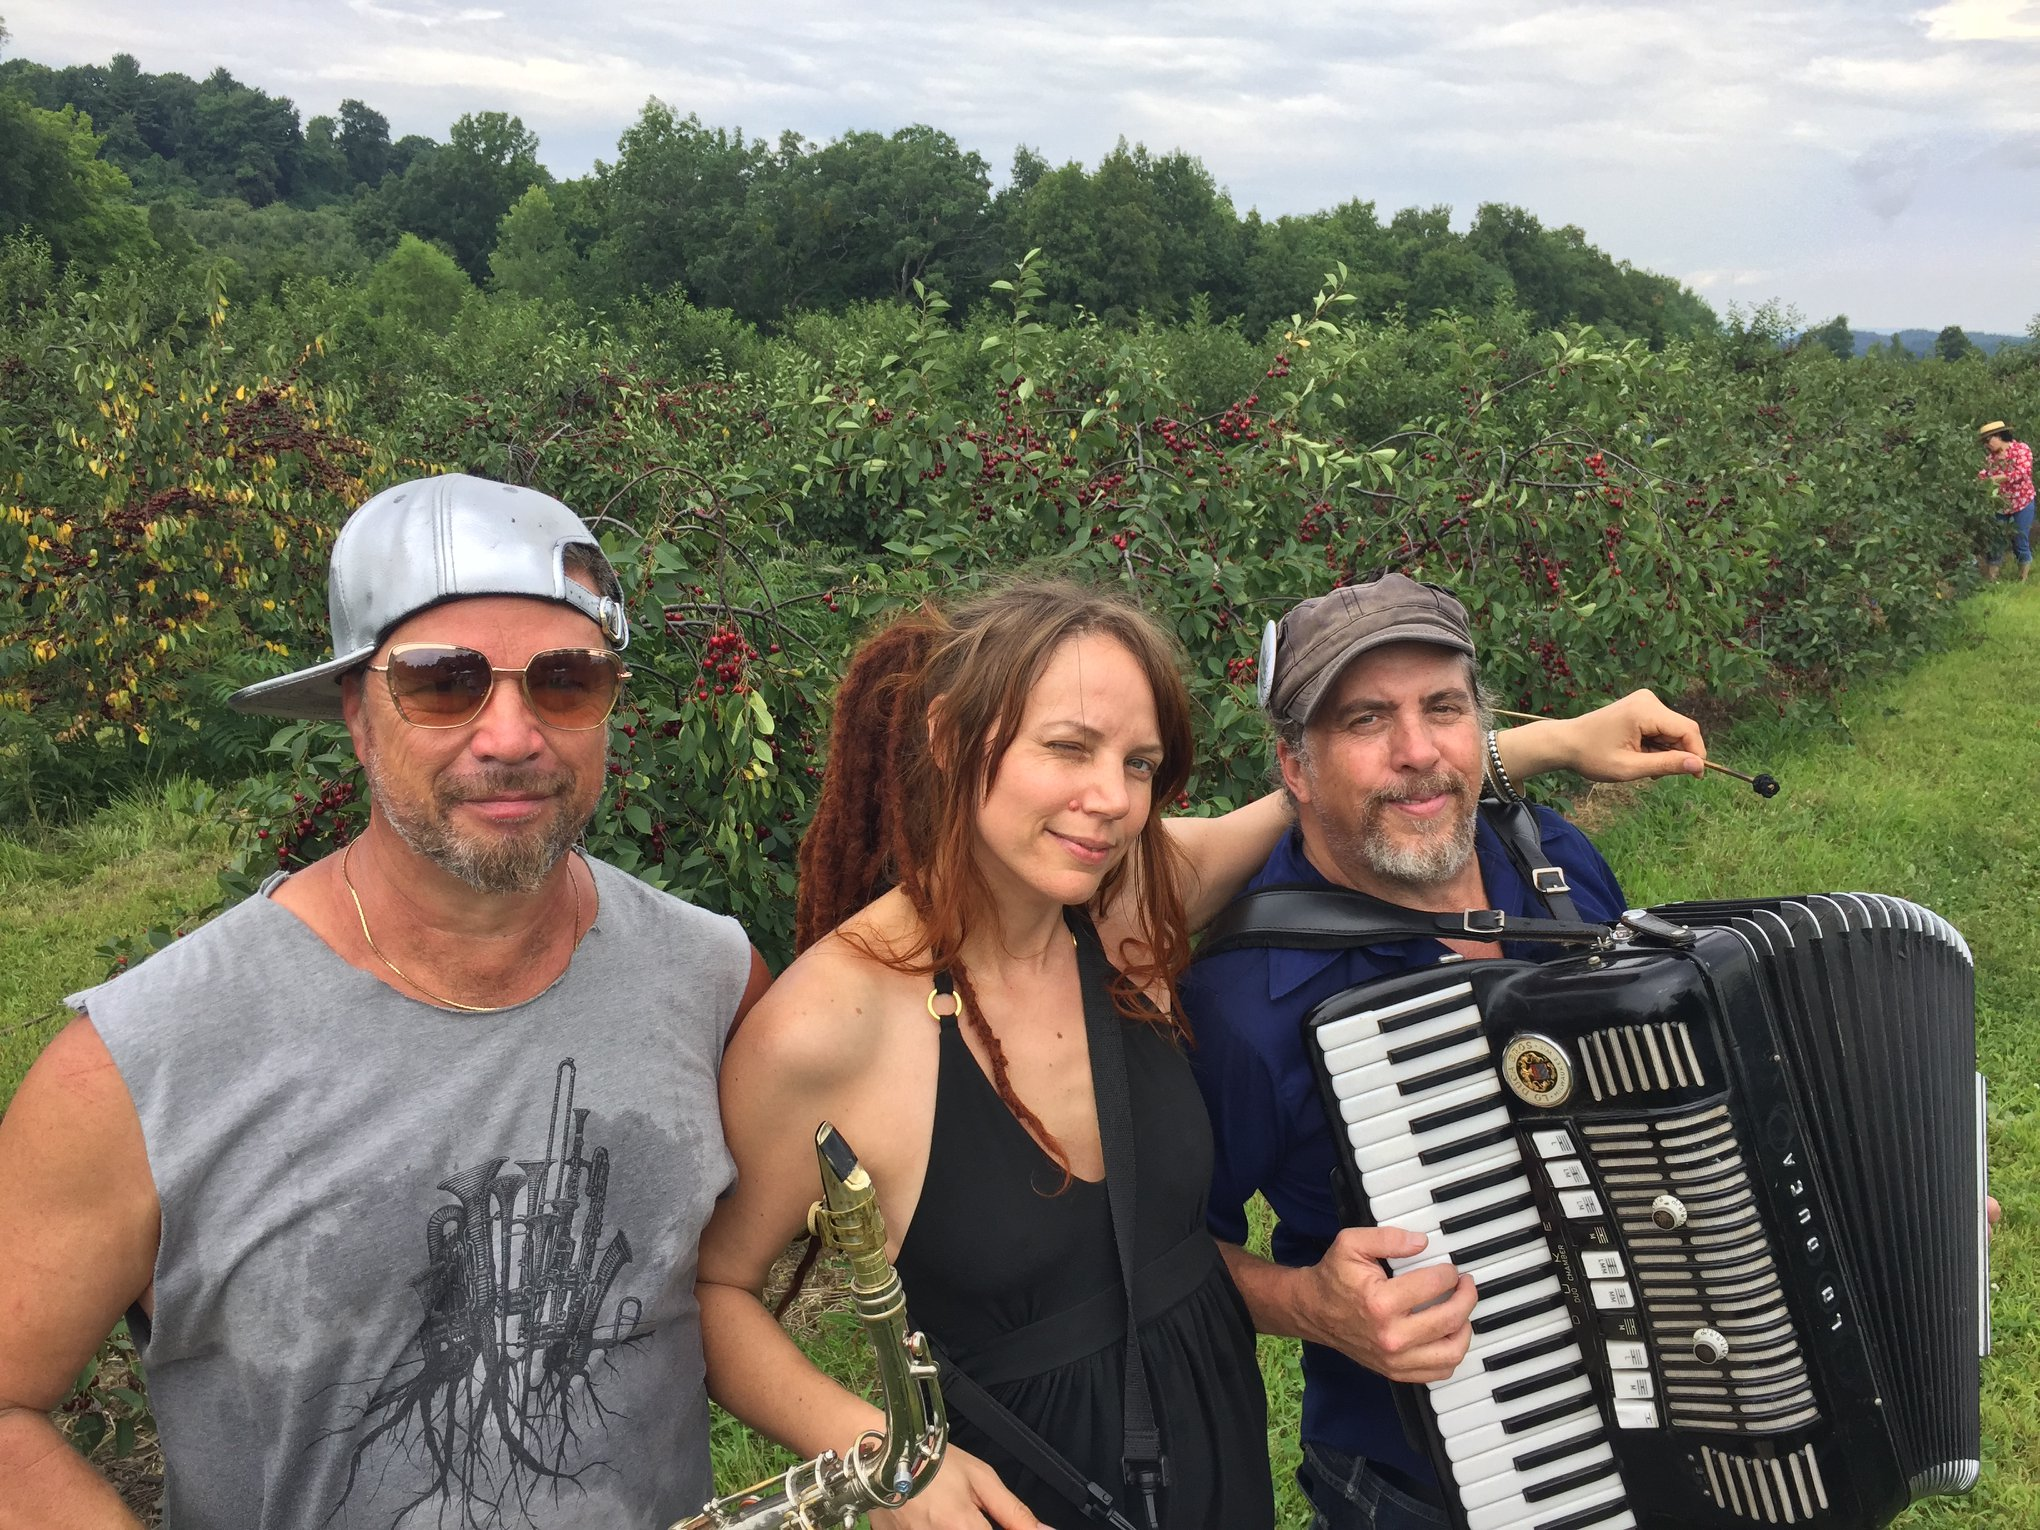 Fix bros fruit farm, hudson ny, band at black sour cherries